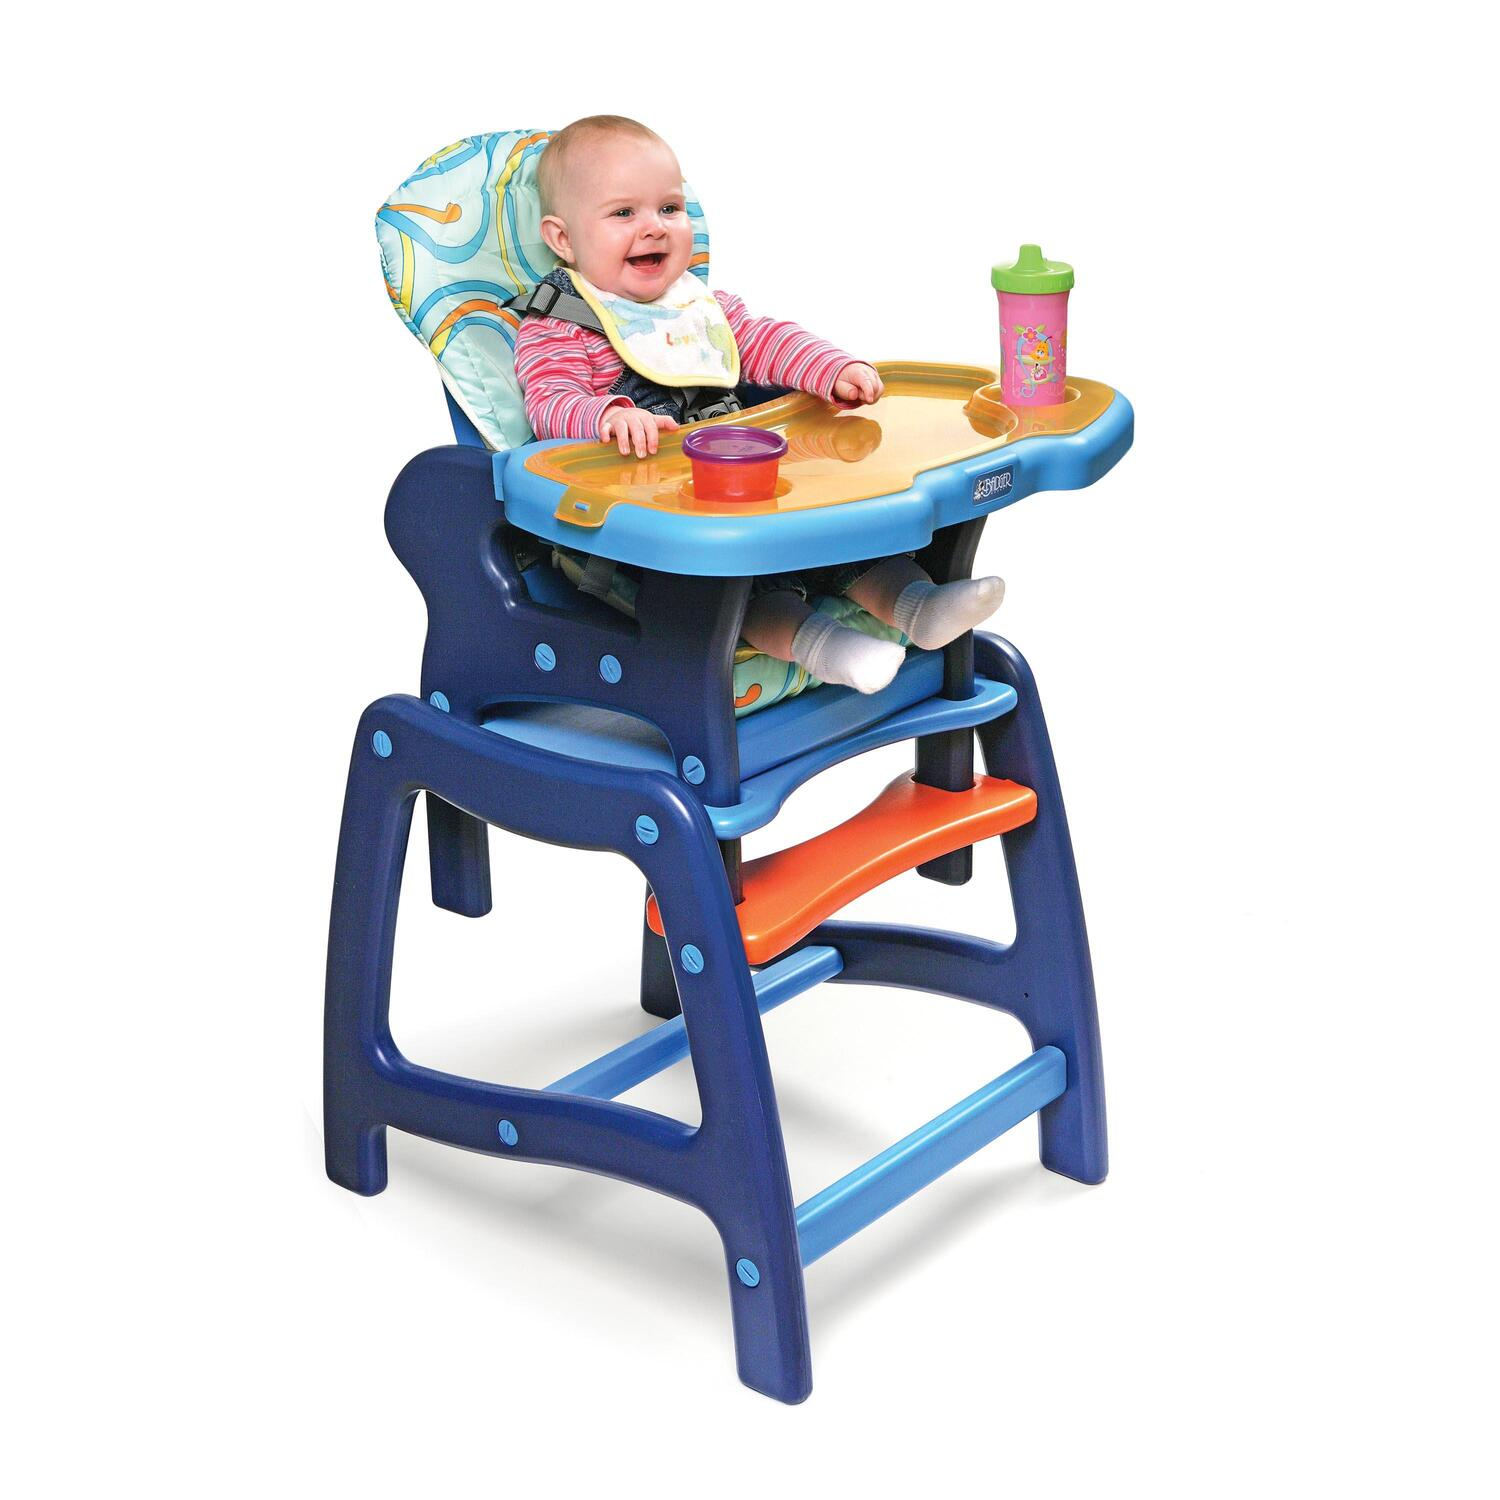 Baby Chair For Eating Envee Baby High Chair With Playtable Conversion From